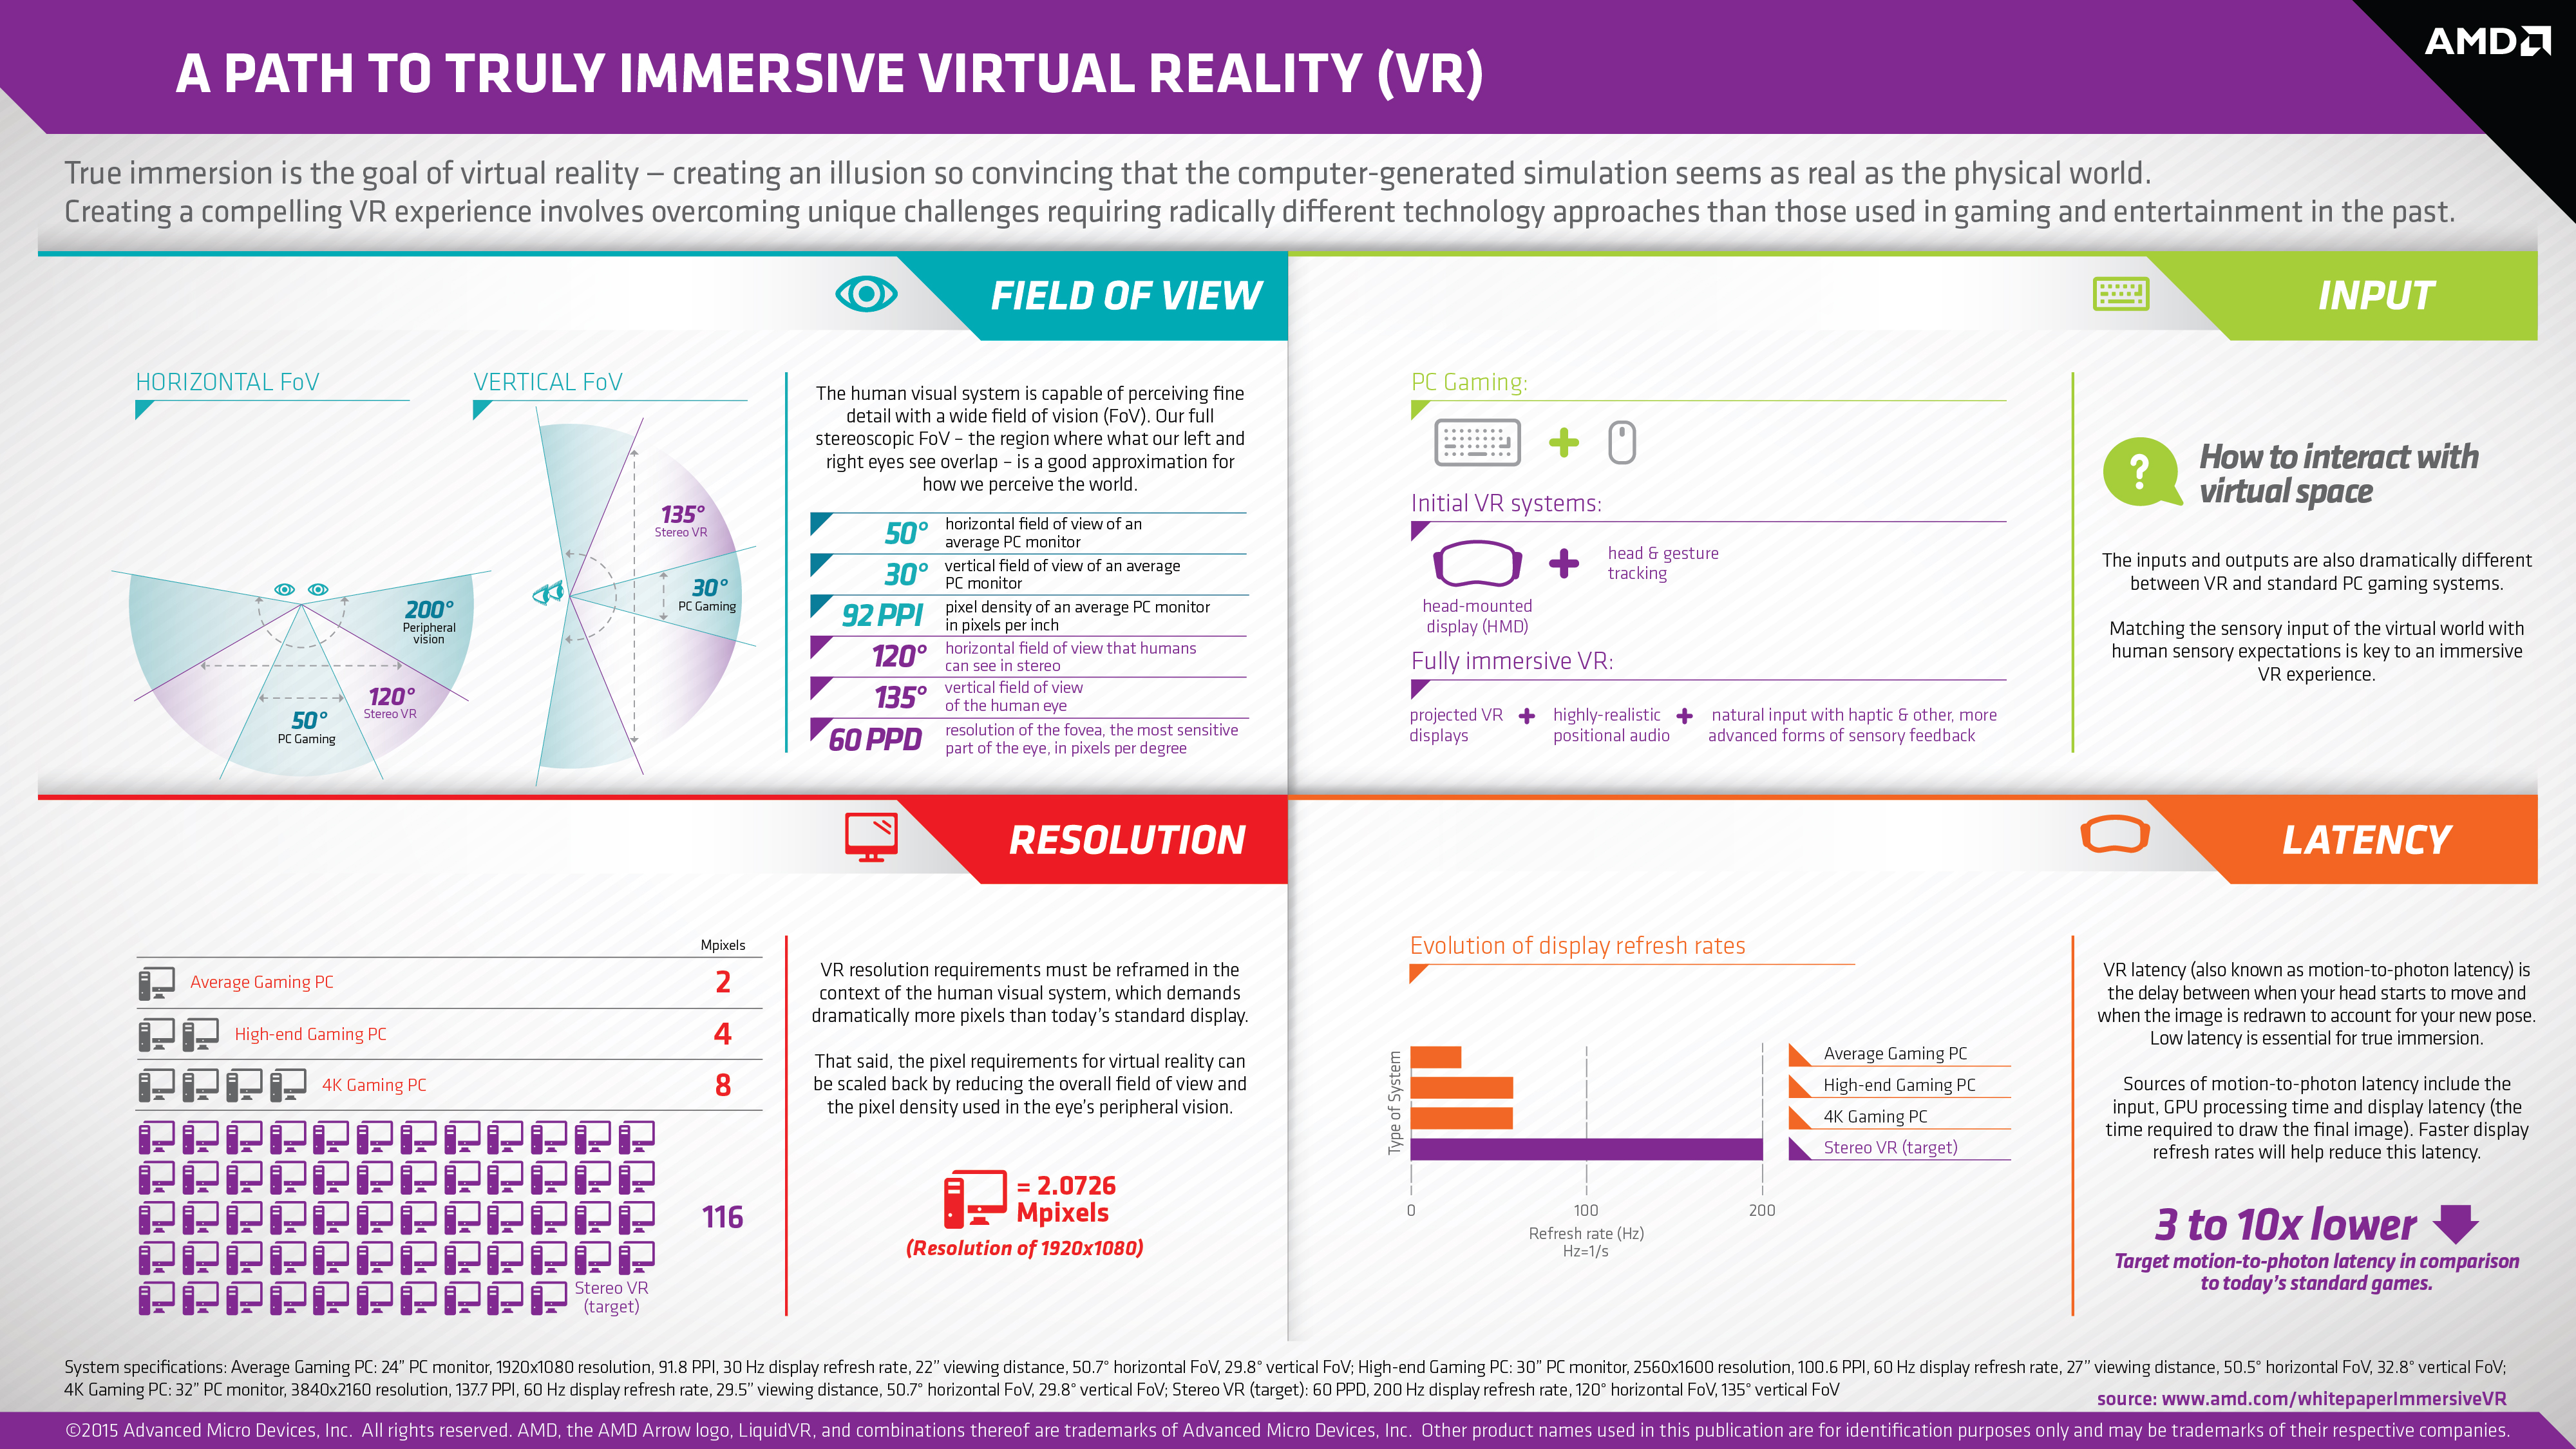 A Path To Truly Immersive Virtual Reality